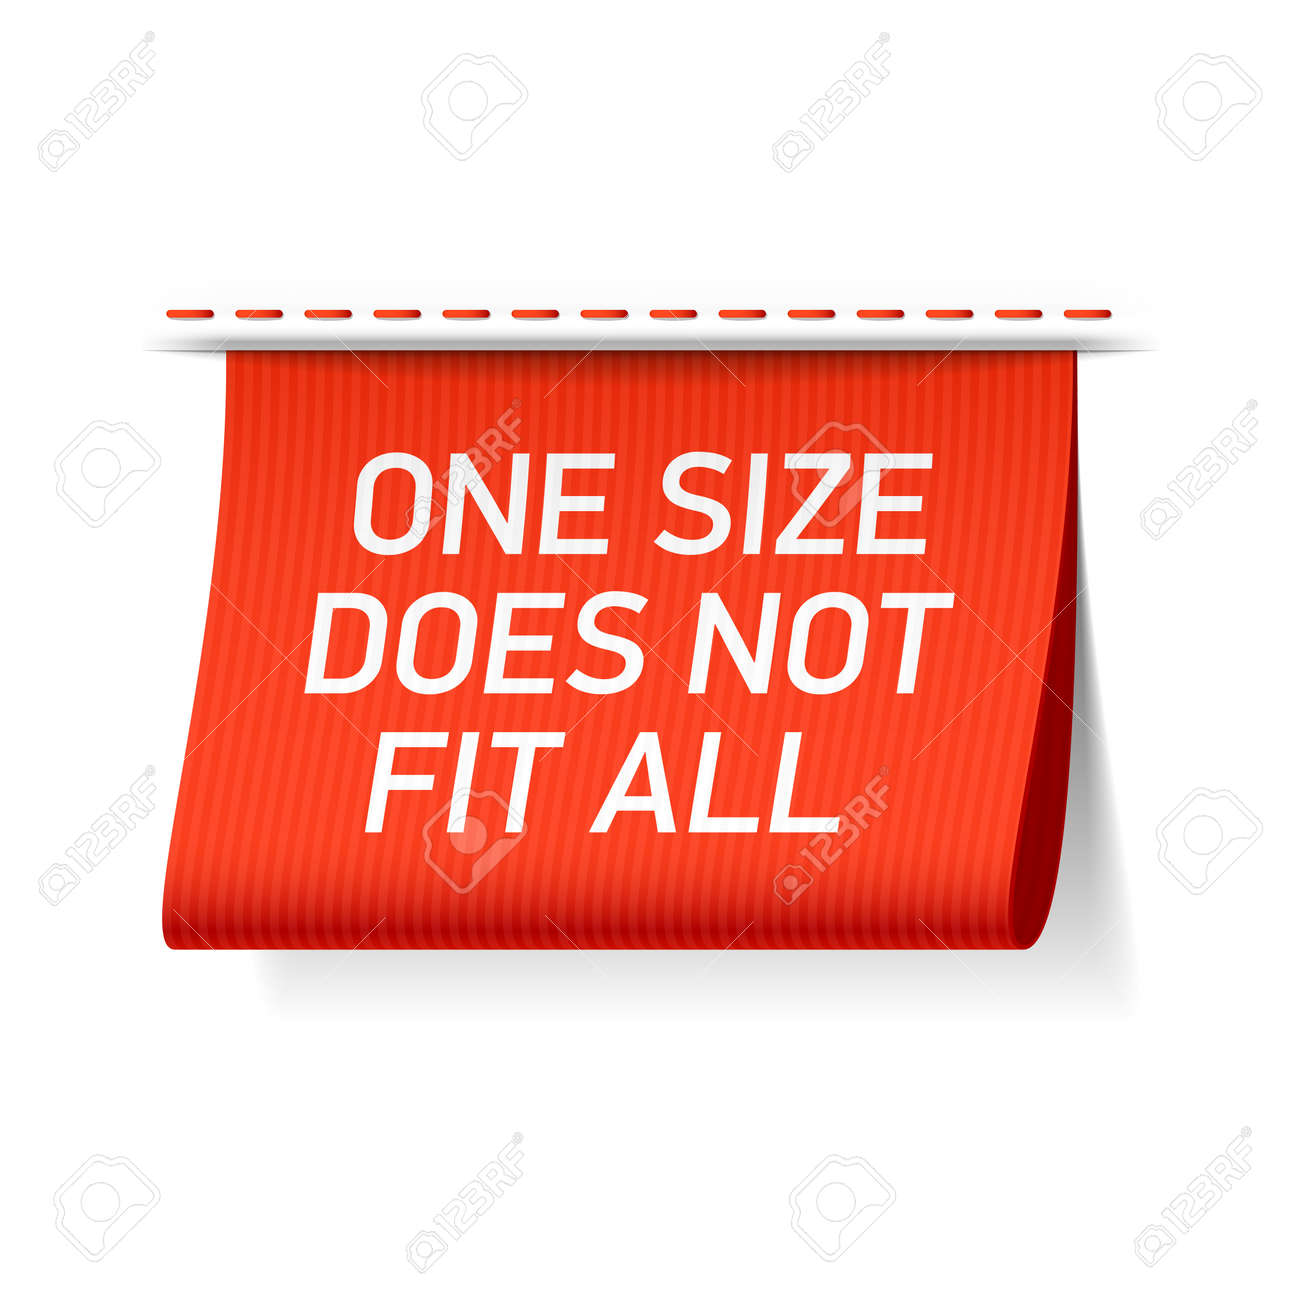 f22043d5b417 One size does not fit all label Stock Vector - 48102643